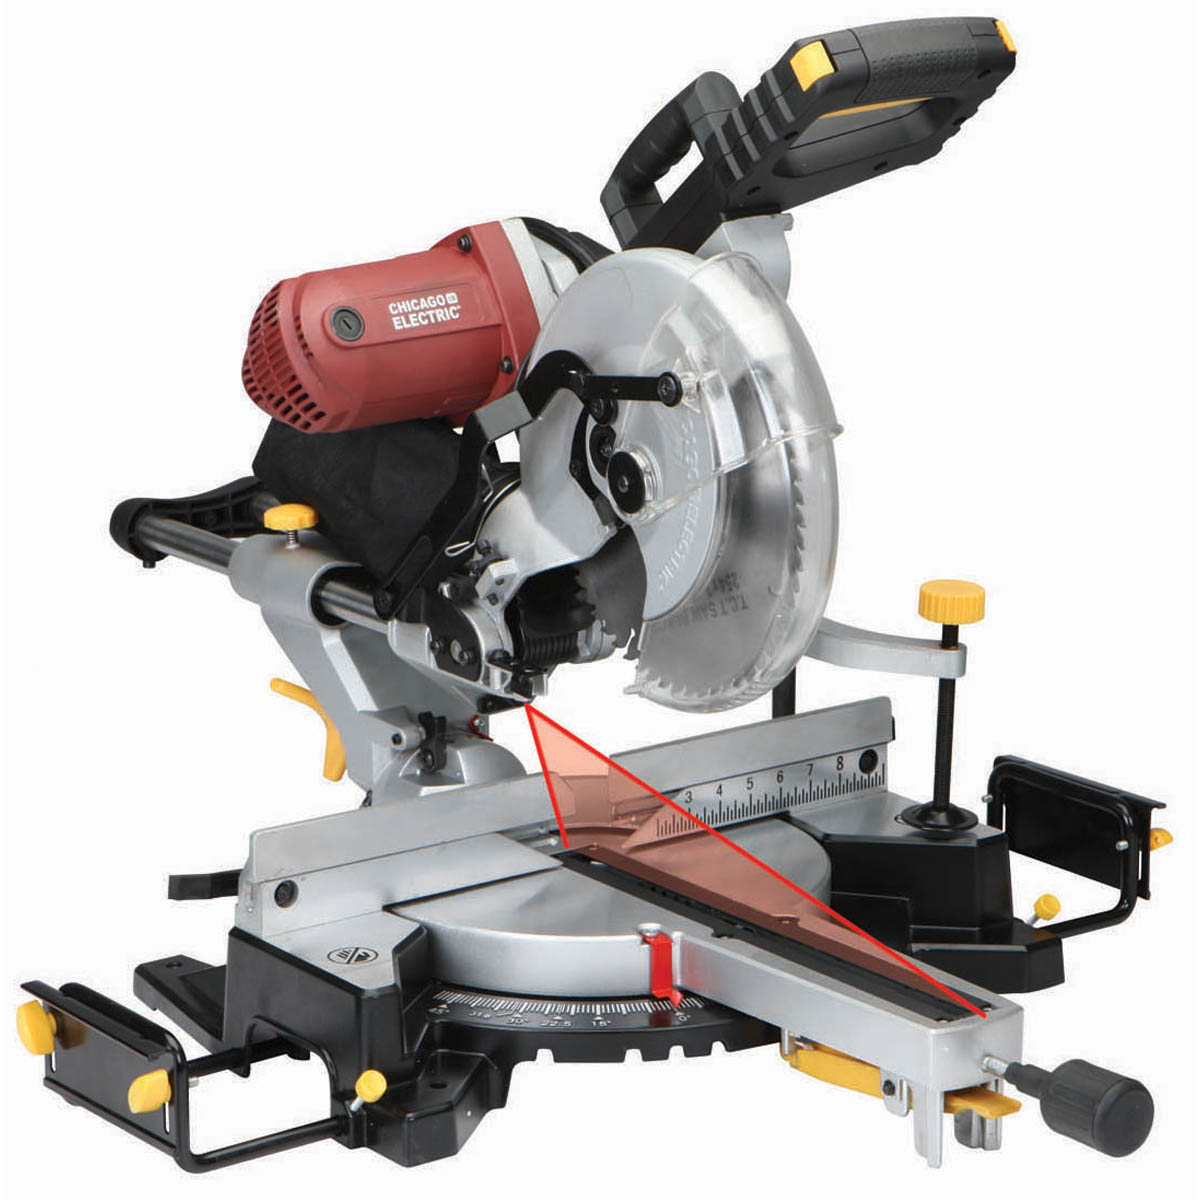 12 in double bevel sliding compound miter saw with laser guide system